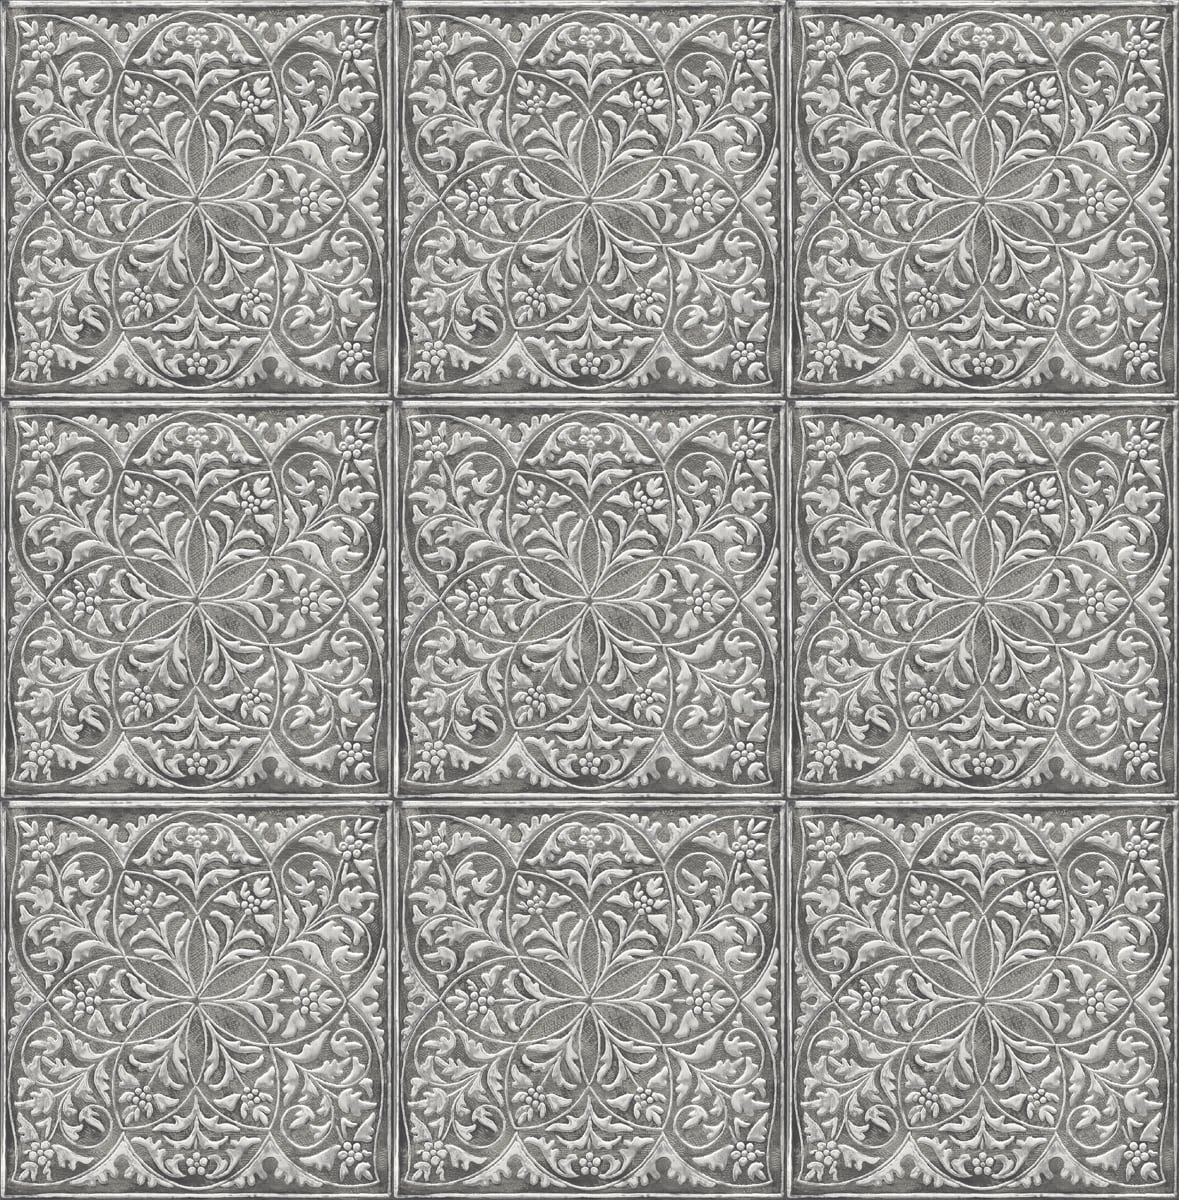 nextwall faux embossed tile peel and stick wallpaper